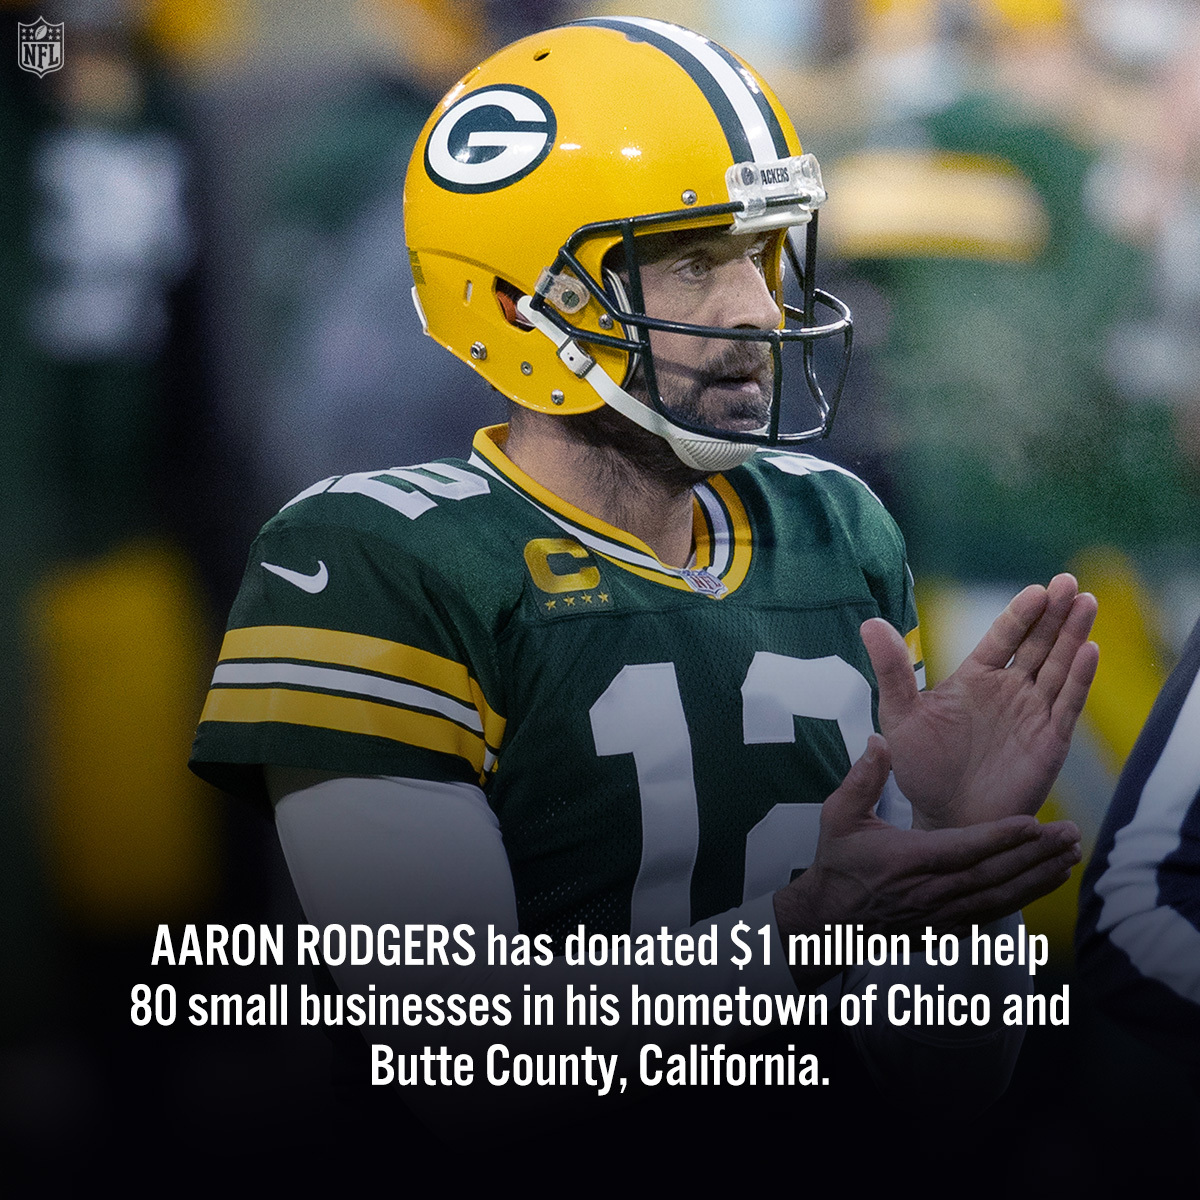 .@AaronRodgers12 donated $1 million to small businesses in his hometown. 🙏